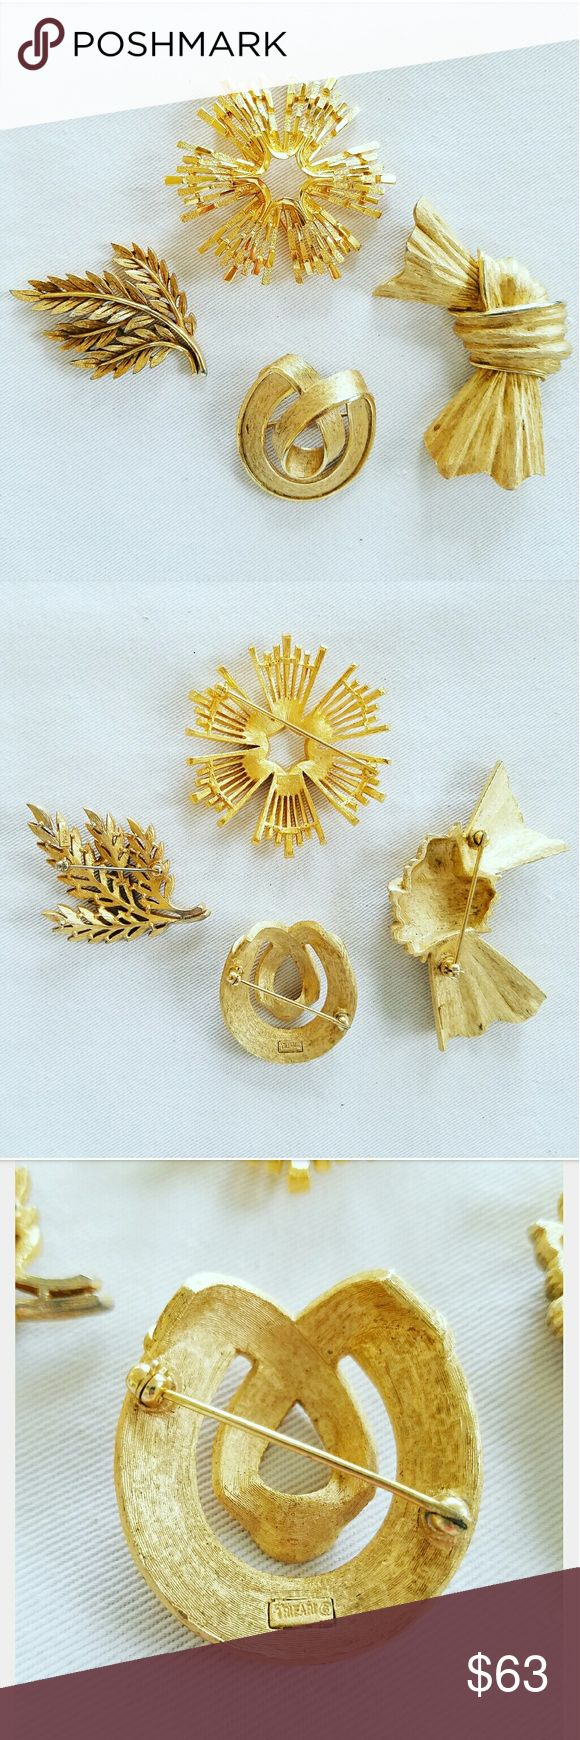 """Set of 4 Vintage Gold Crown Trifari Brooches Trifari used a Crown Symbol over the """"T"""" as a logo on most of the pieces produced from the 1940s through the 1960s. In 1955 Trifari started using the copyright symbol in its signature. Pieces of that era will have both the Crown and Copyright symbols in the signature, which was used in the late 1950s to late 1960s. Many of the most highly sought after vintage Trifari pieces have this signature, called """"CROWN TRIFARI."""" All in excellent condition…"""